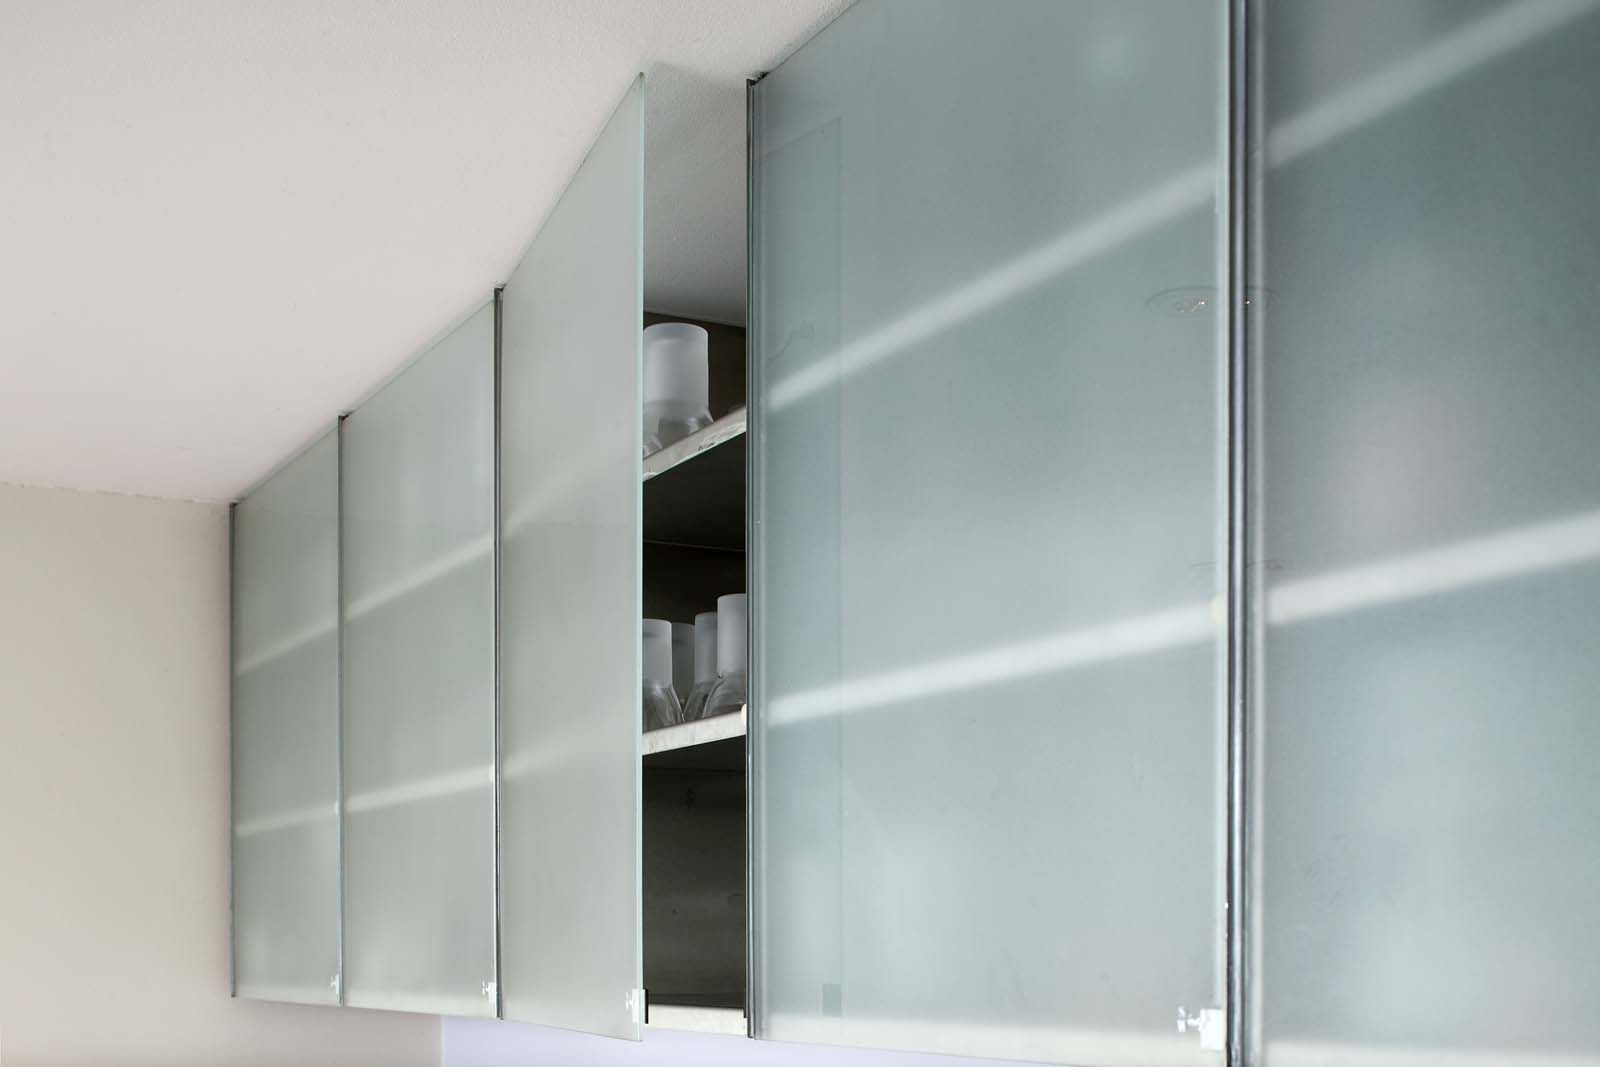 Le Meilleur Cool Frameless Glass Cabinet Doors With Bedroom Ideas Ce Mois Ci